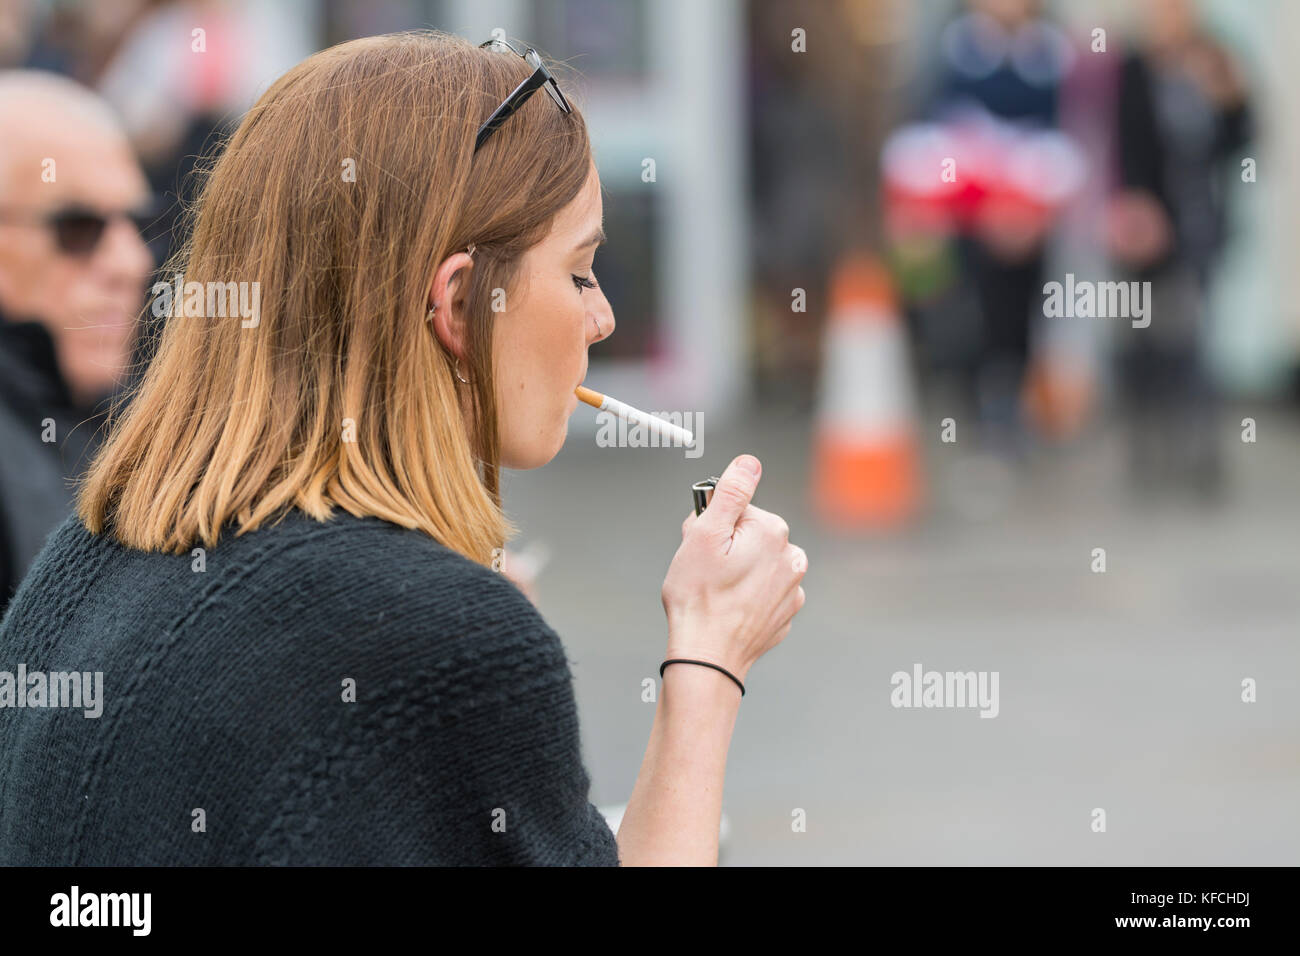 Young woman lighting a cigarette in the UK. Unhealthy lifestyle Stock Photo: 164390286 - Alamy